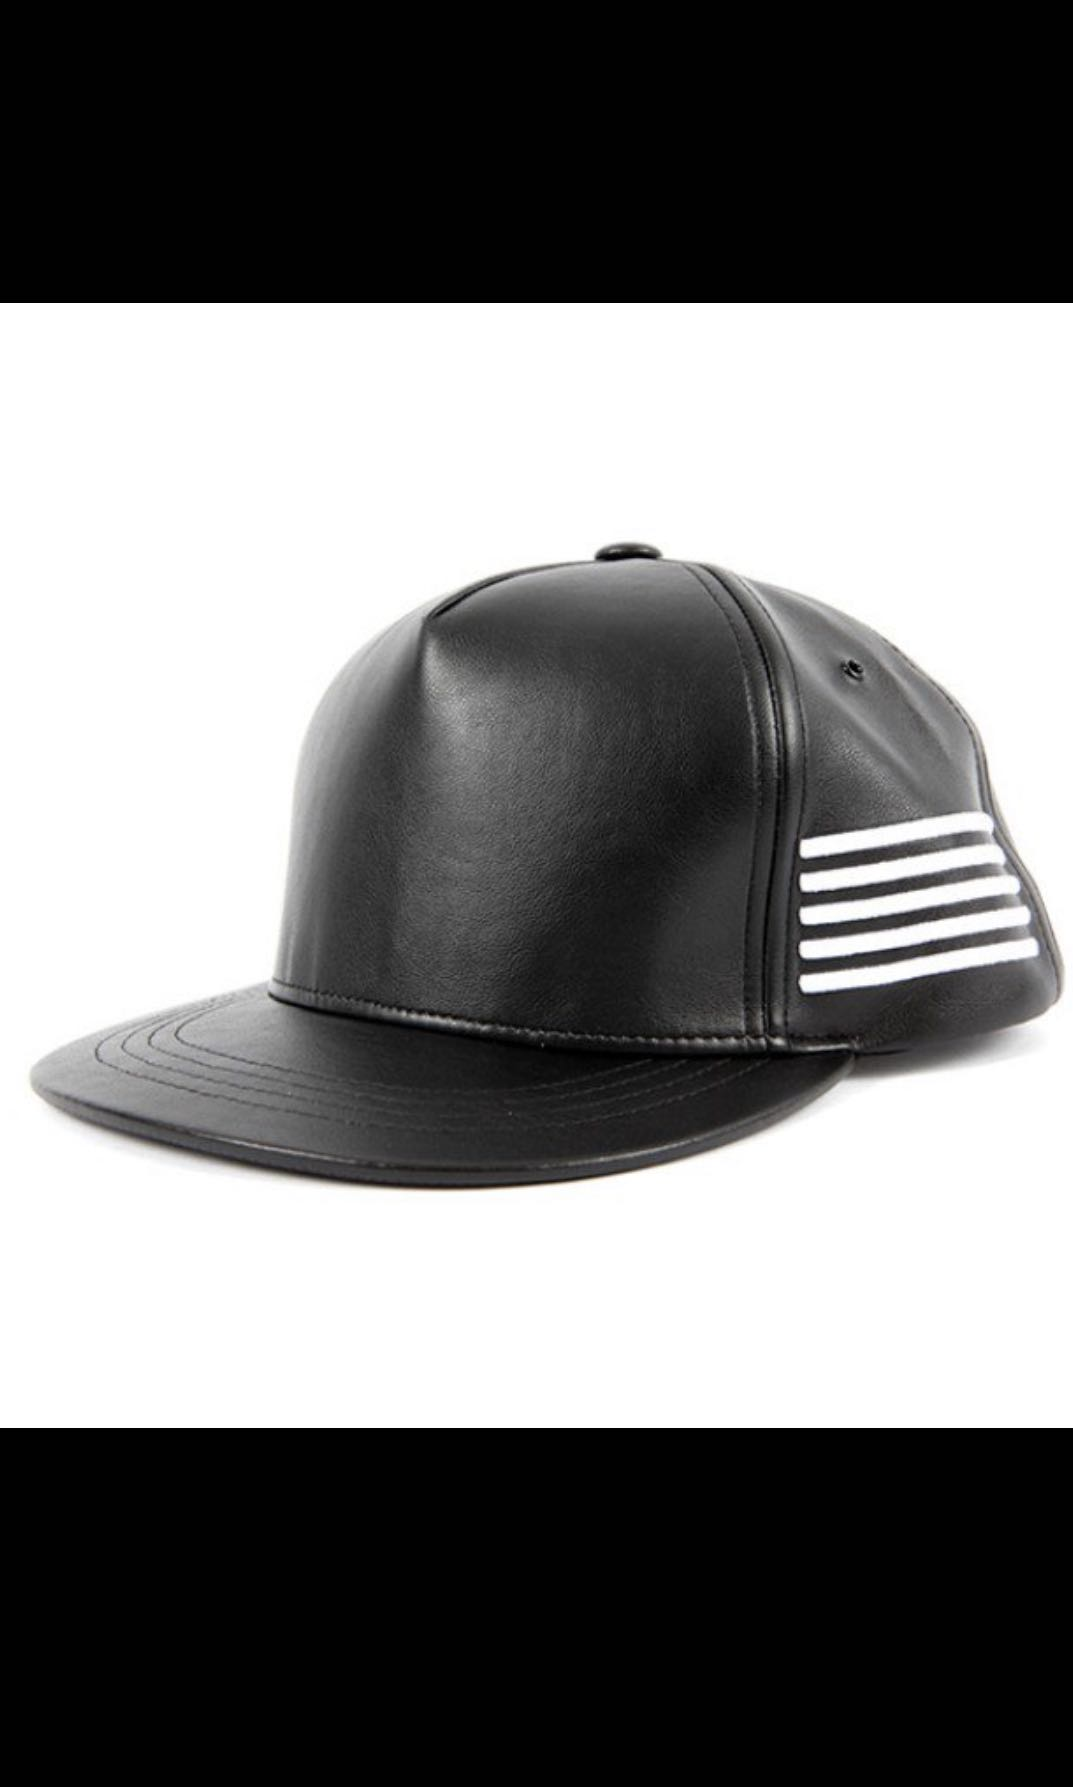 51aba4c7bfb Big Bang Faux Leather Cap (MADE)